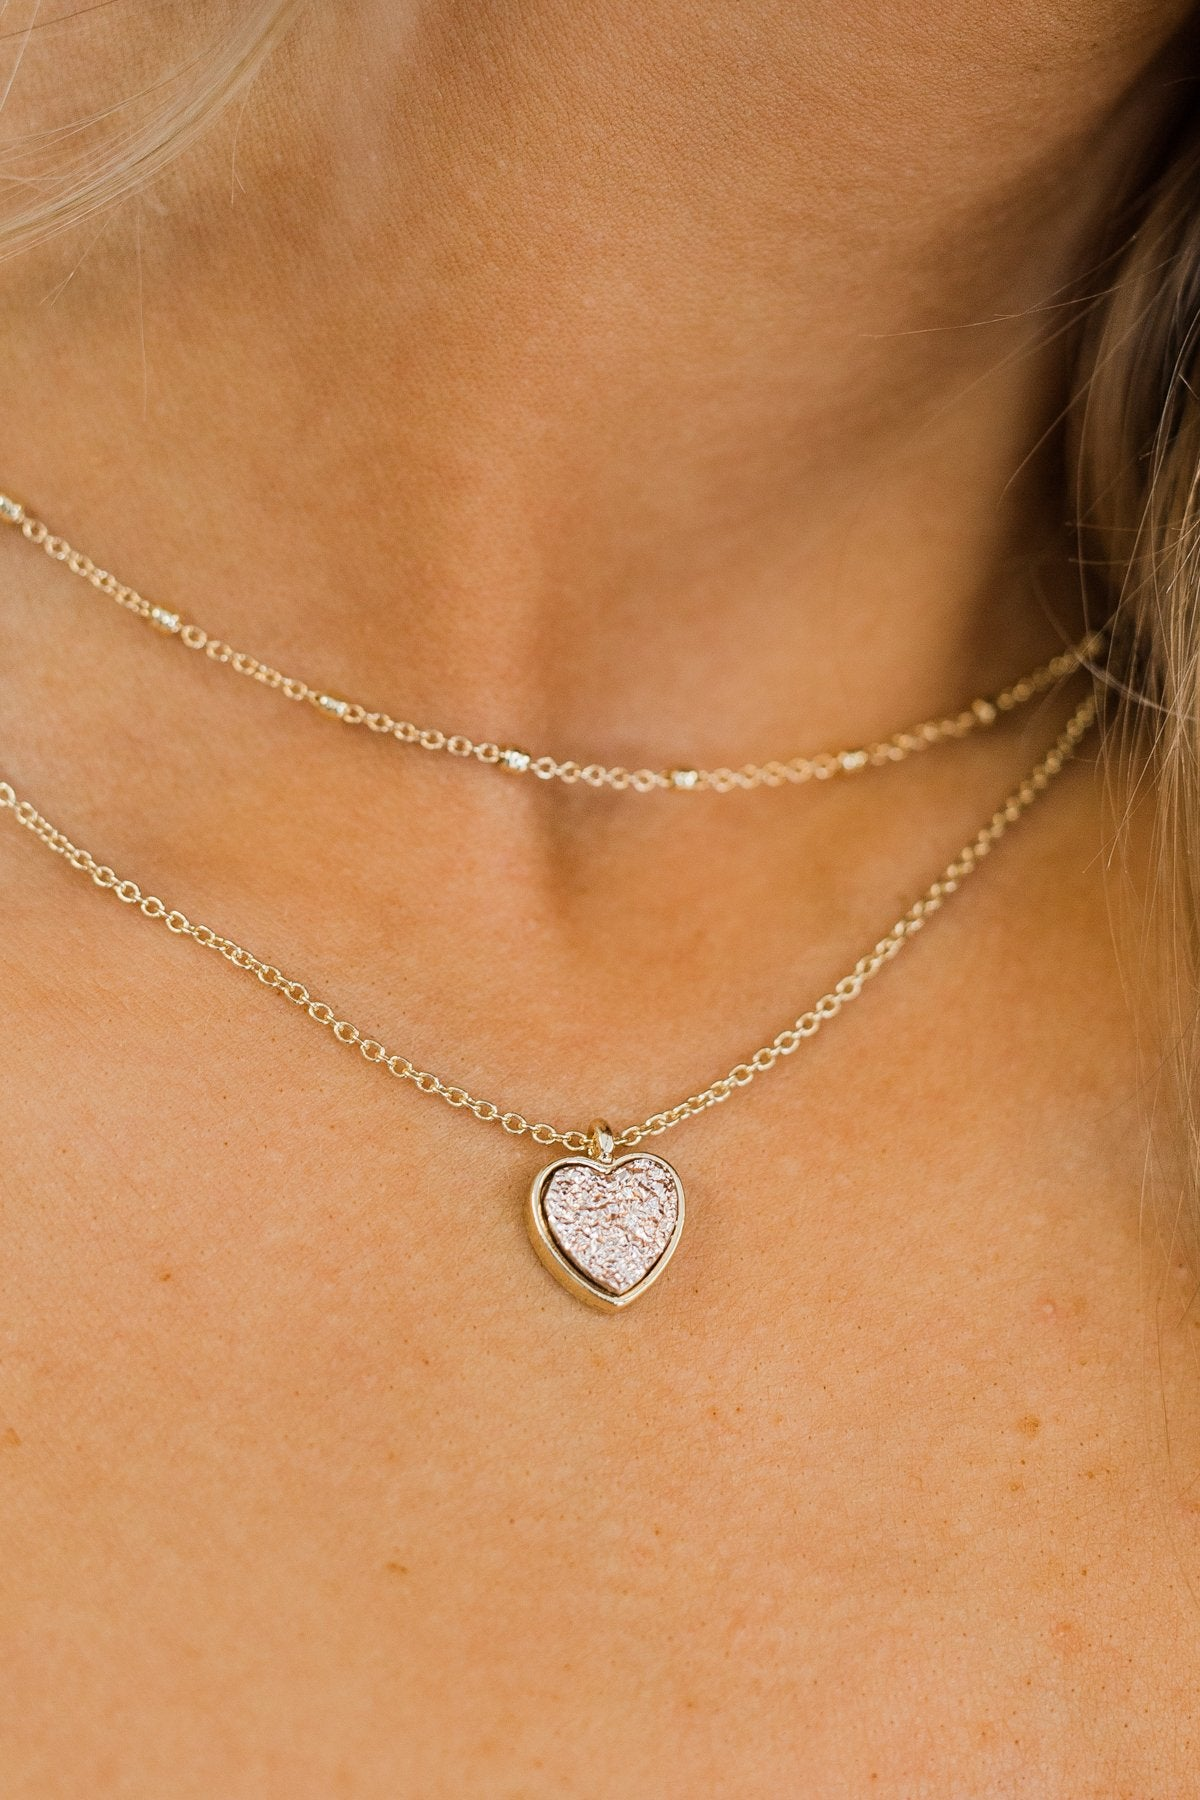 2 Tier Heart of Stone Necklace- Rose Gold